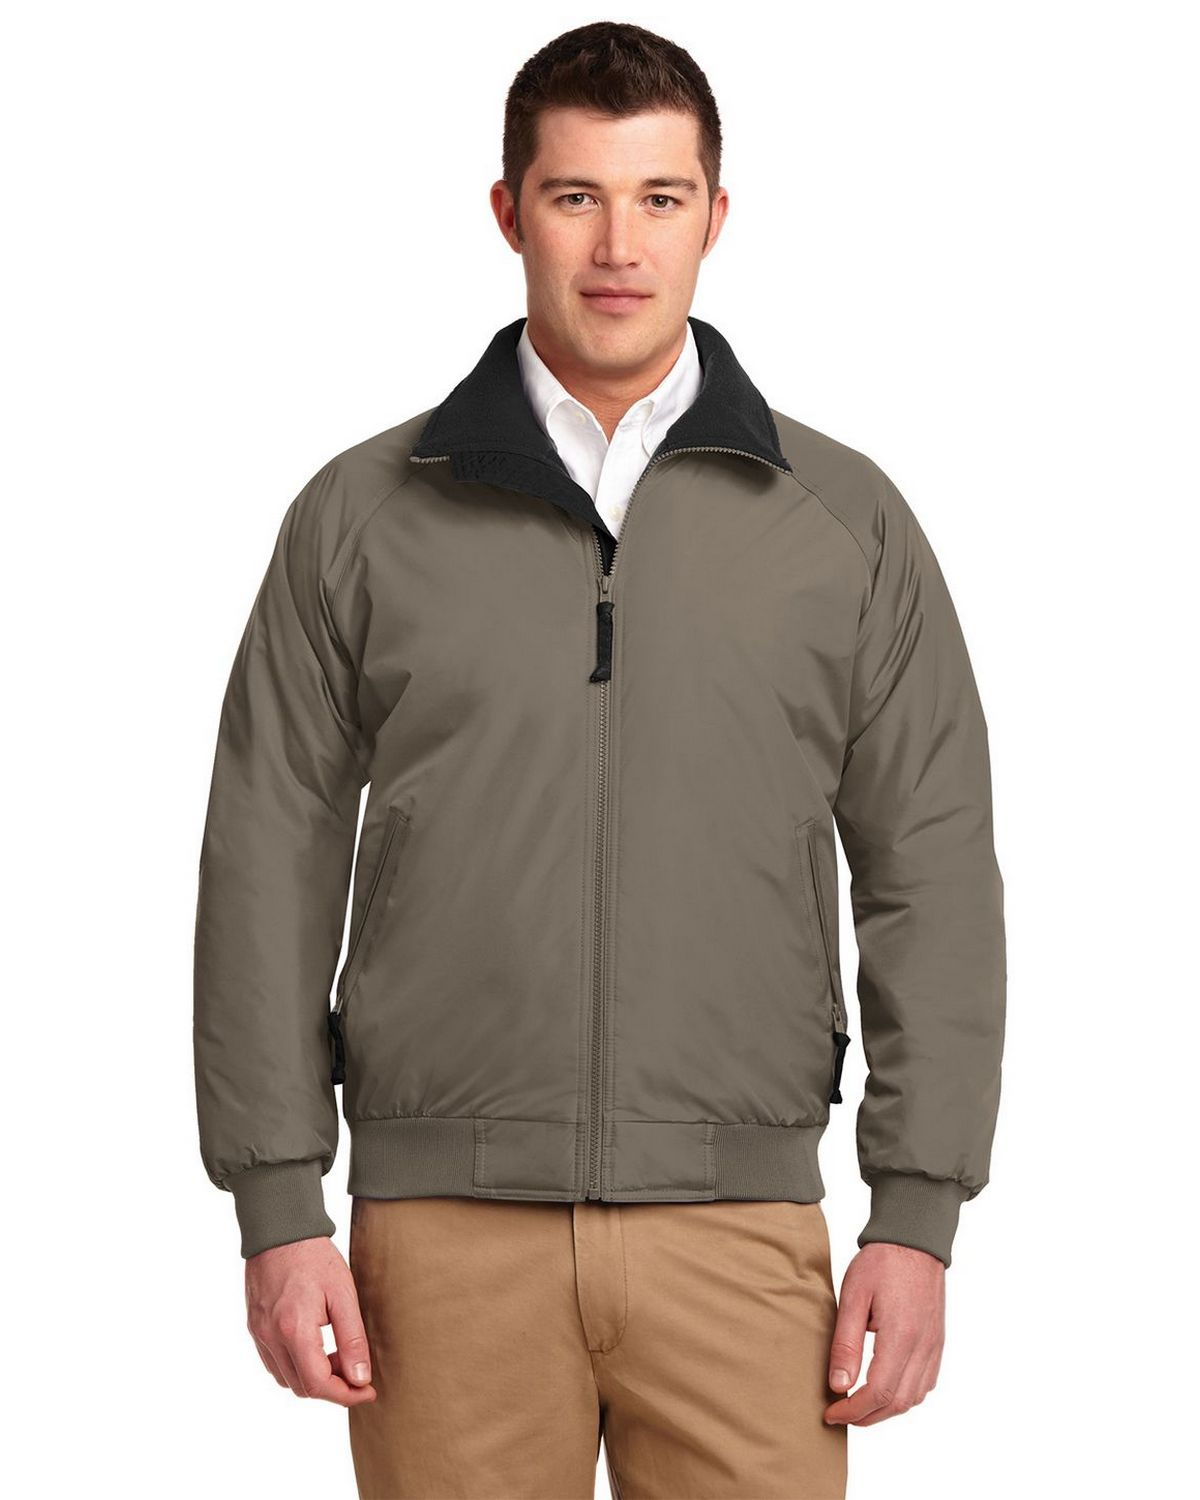 Port Authority J754 Challenger Jacket - Steel Grey/True Black - L J754